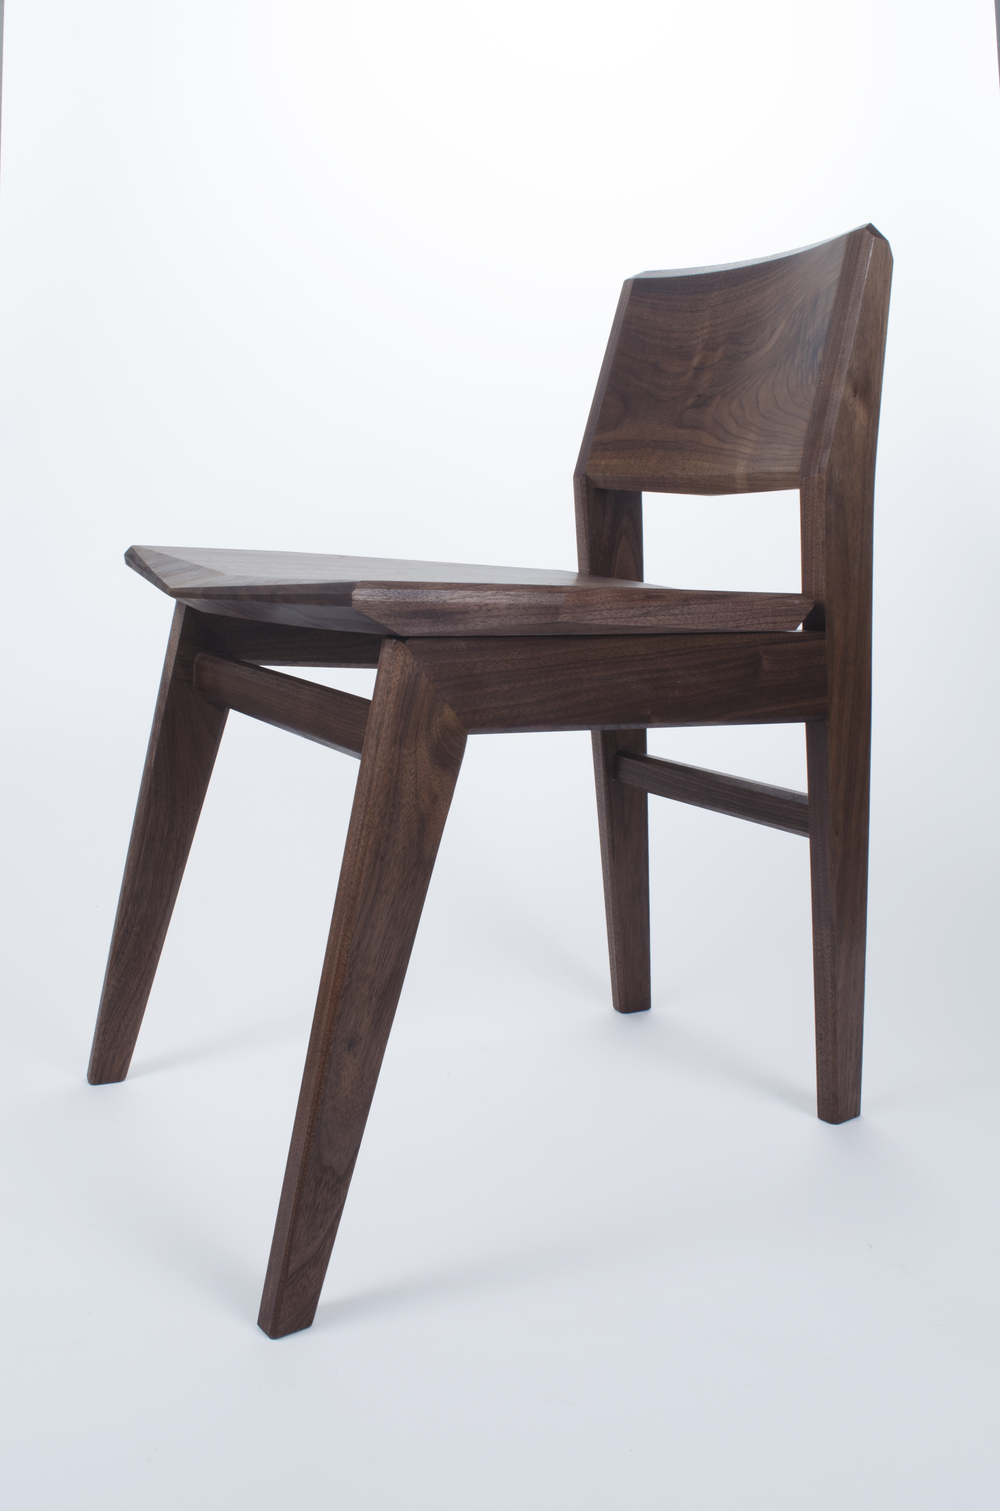 walnut chair low front angle.jpg